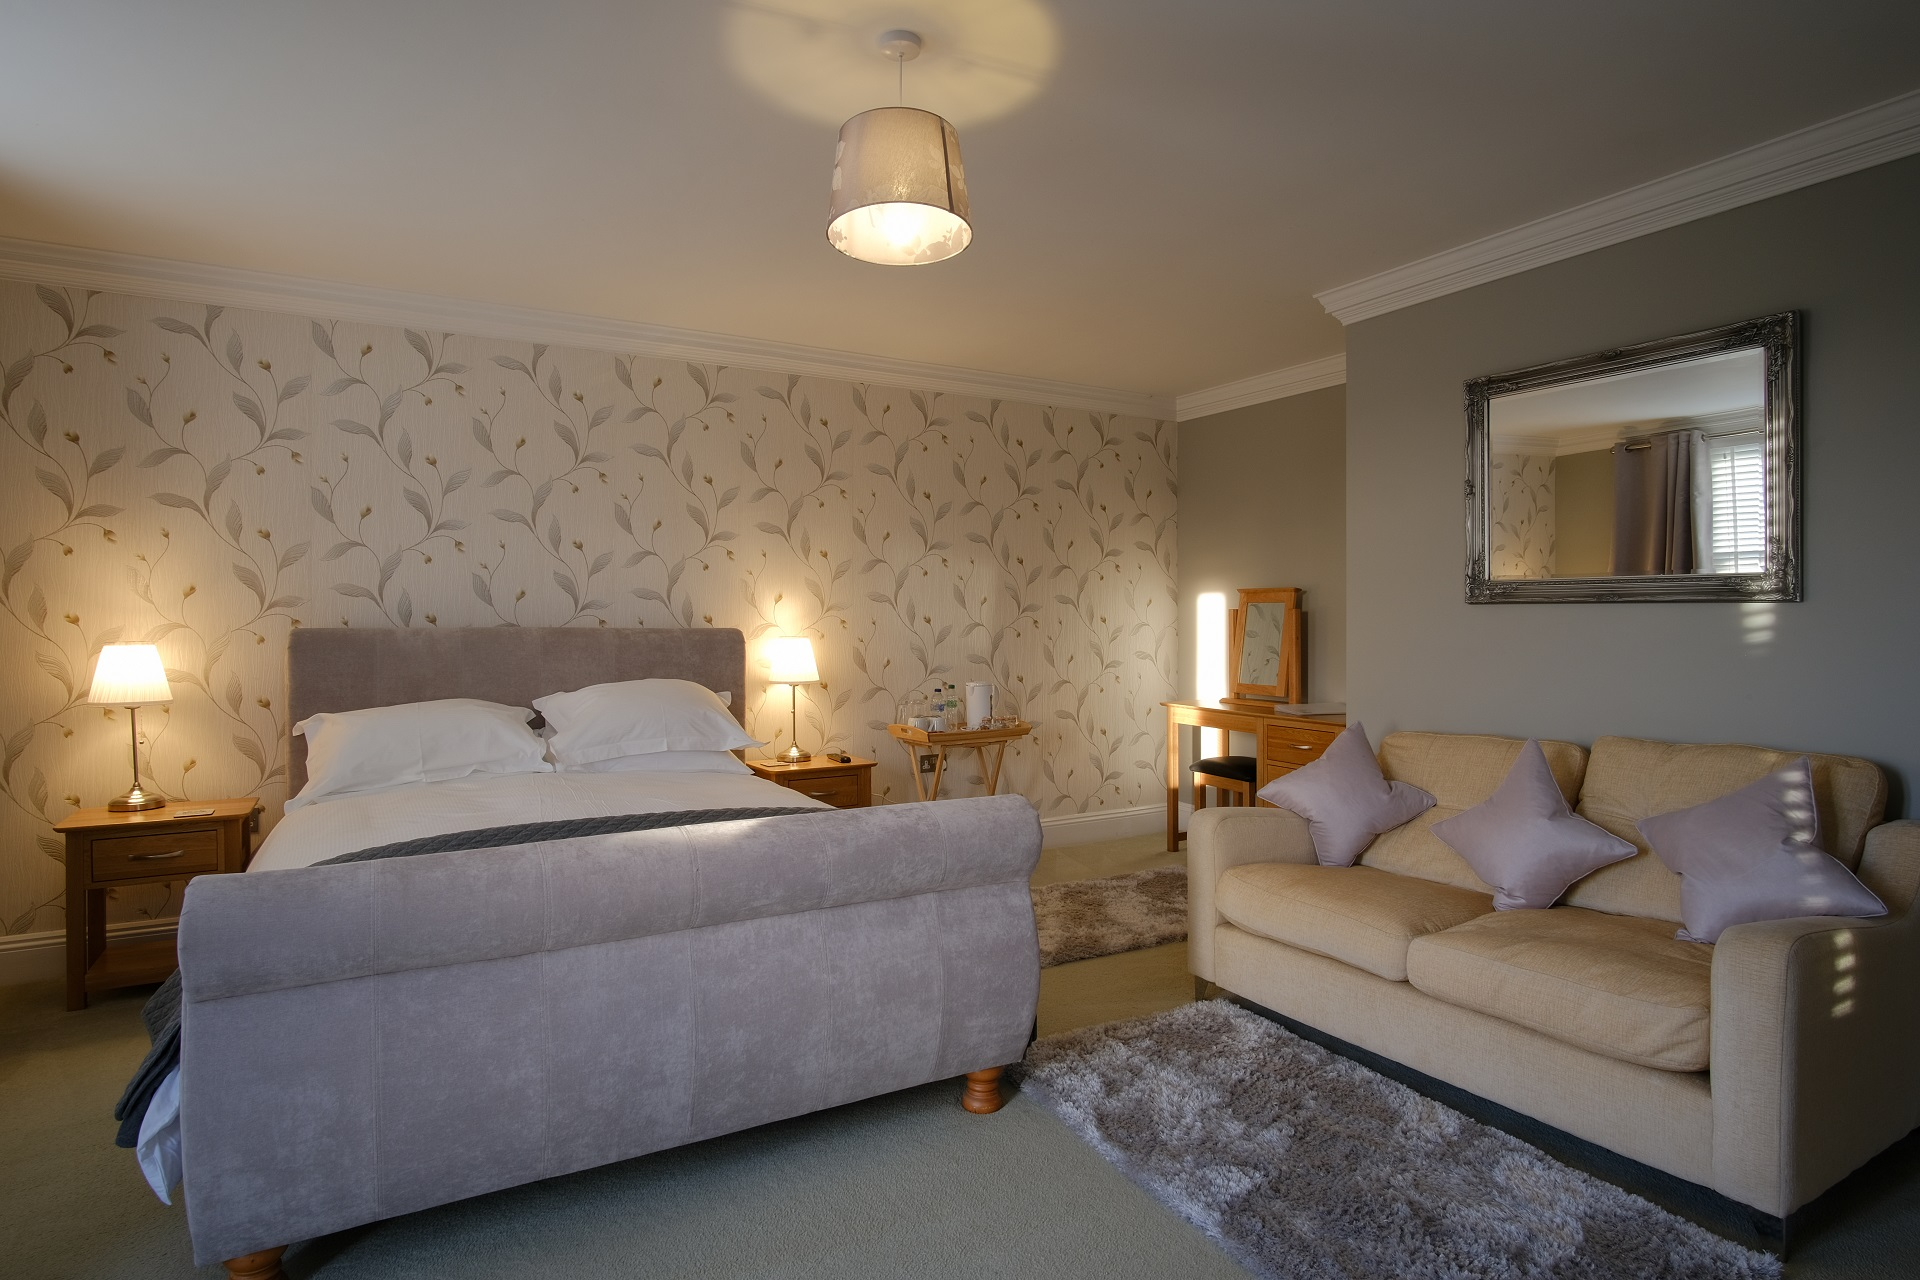 manor farmhouse bedroom 3 bed and sofa